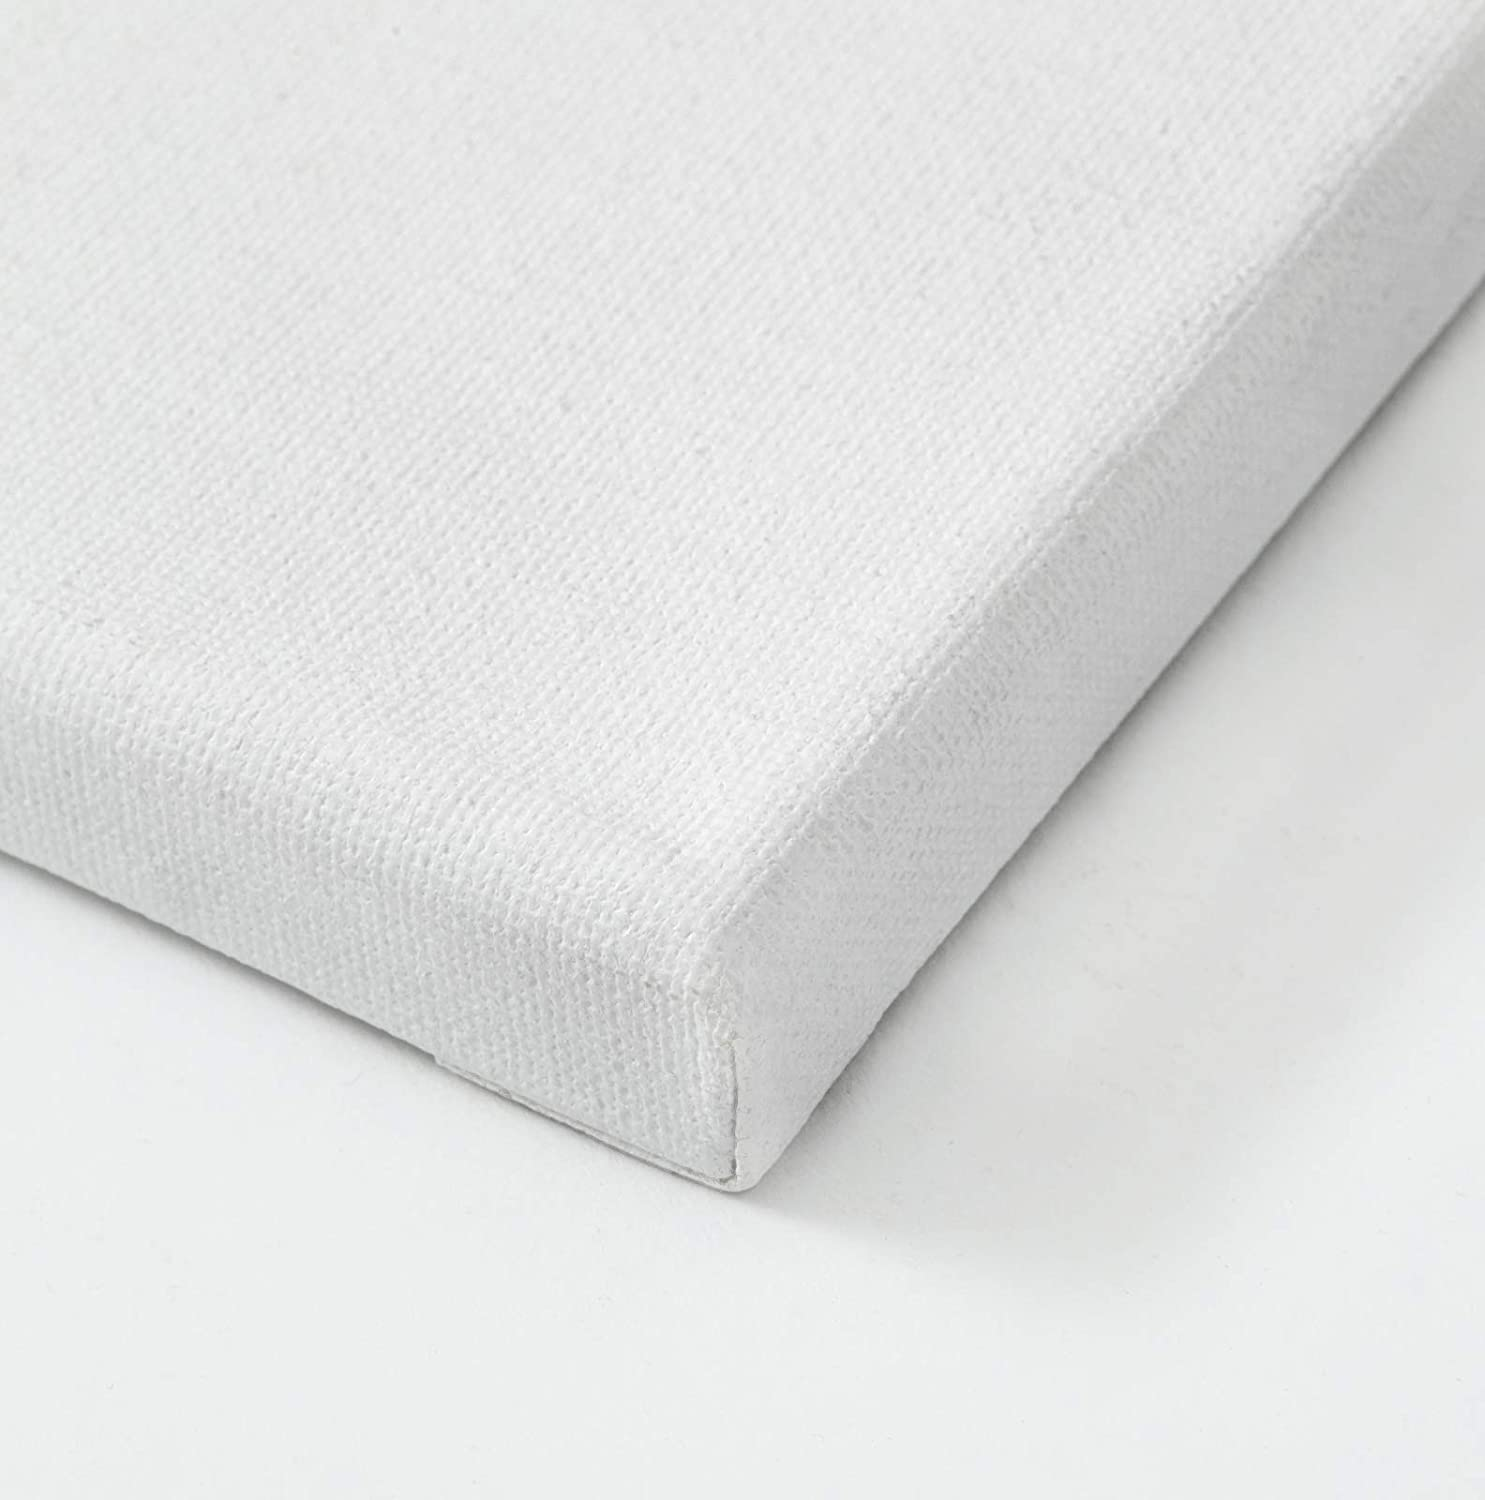 miniature 16 - Americanflat Stretched Canvas in White 100% Cotton Wooden Frames & Acid Free